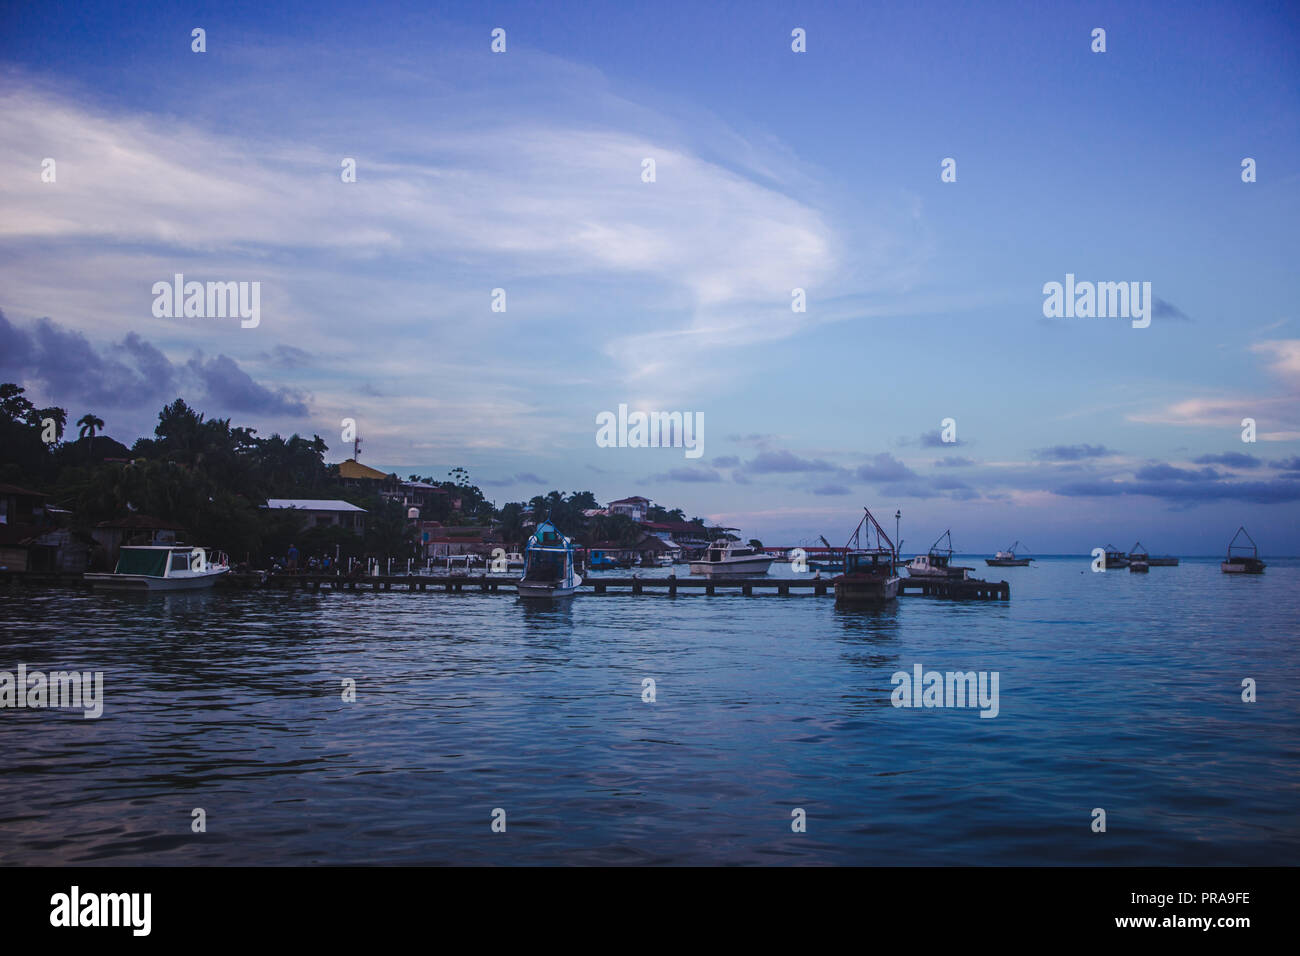 Sunset over boats lined up at the docks of Lívingston, a Garifuna Caribbean town in east Guatemala Stock Photo